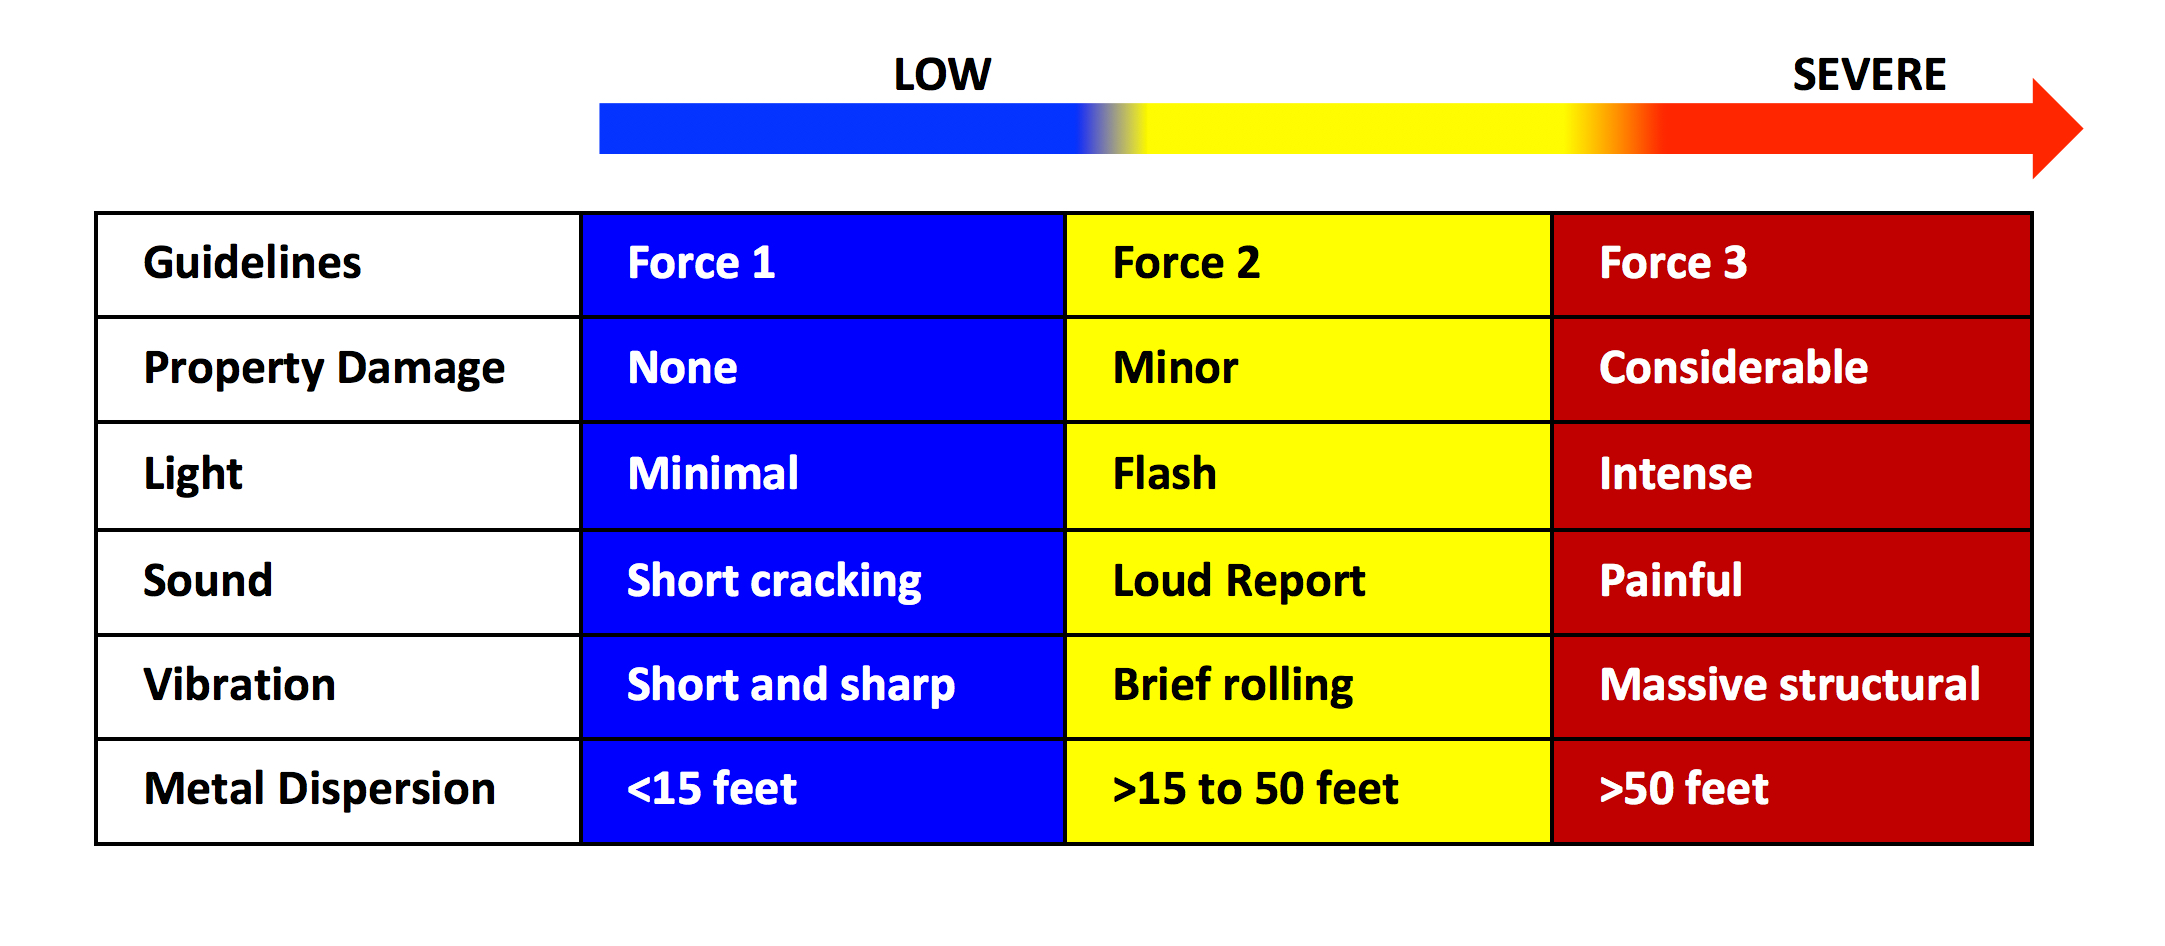 Figure 1. Explosion rating force criteria.